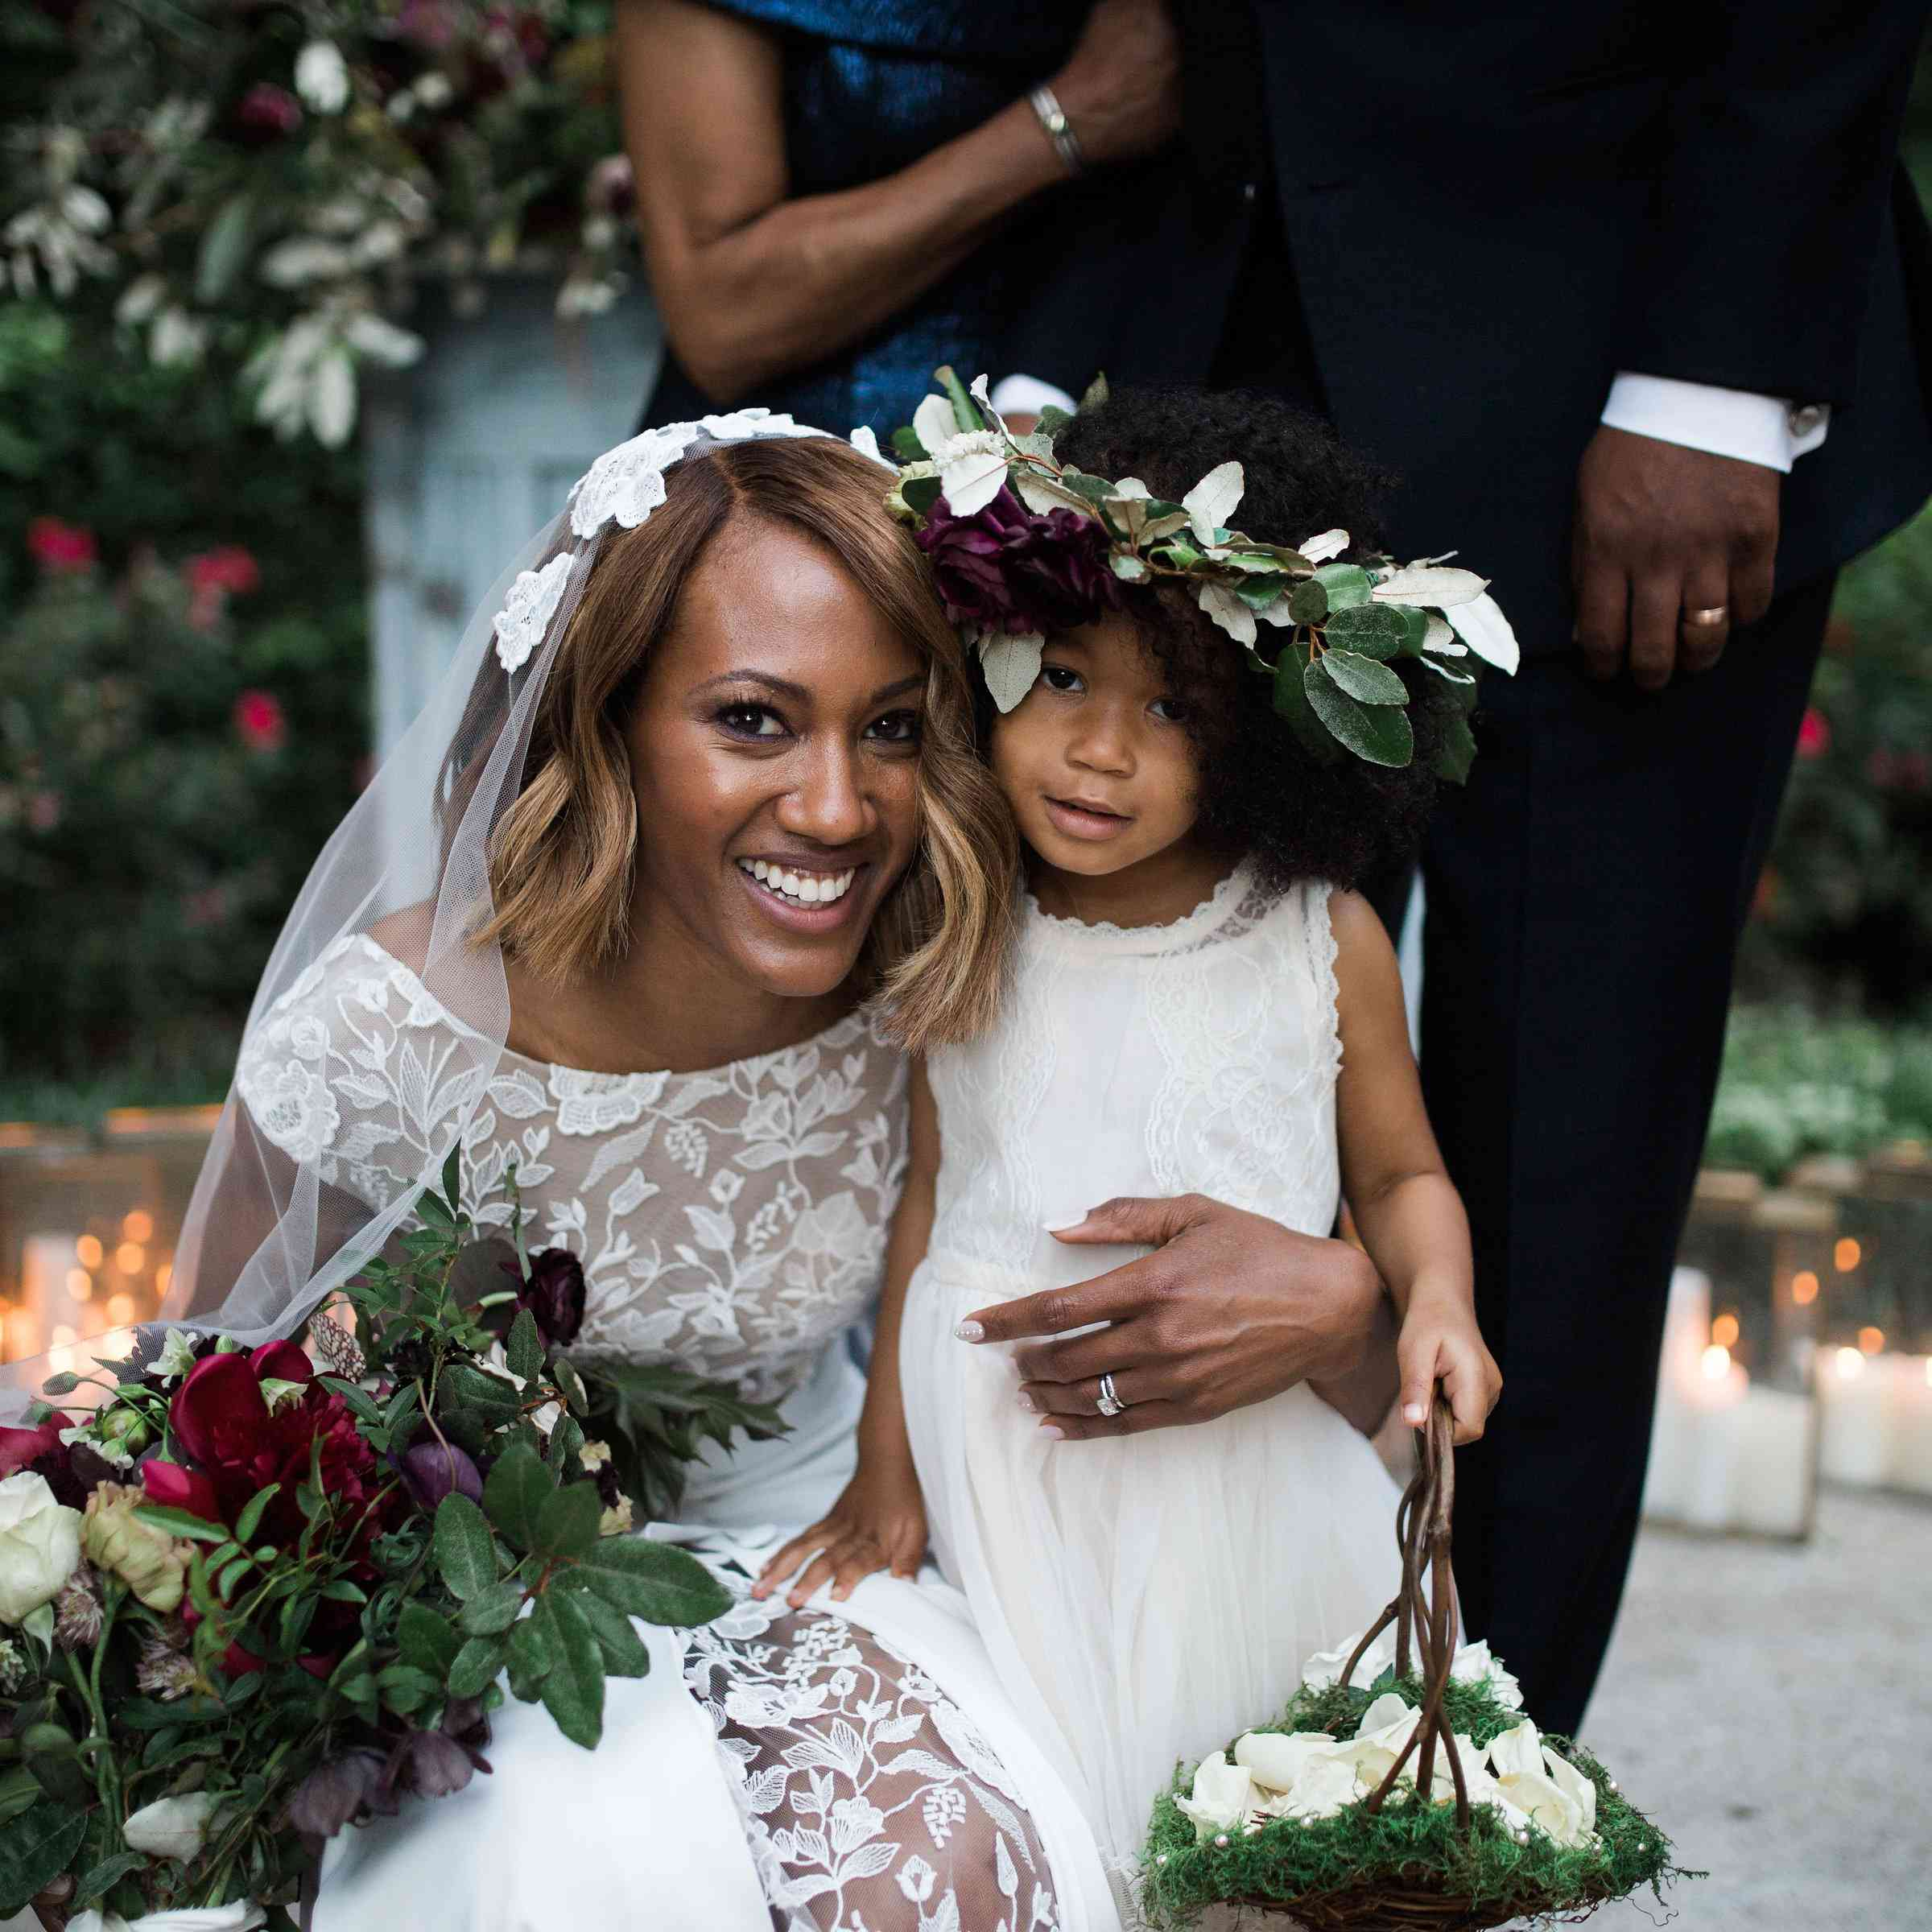 Bride and flower girl at wedding